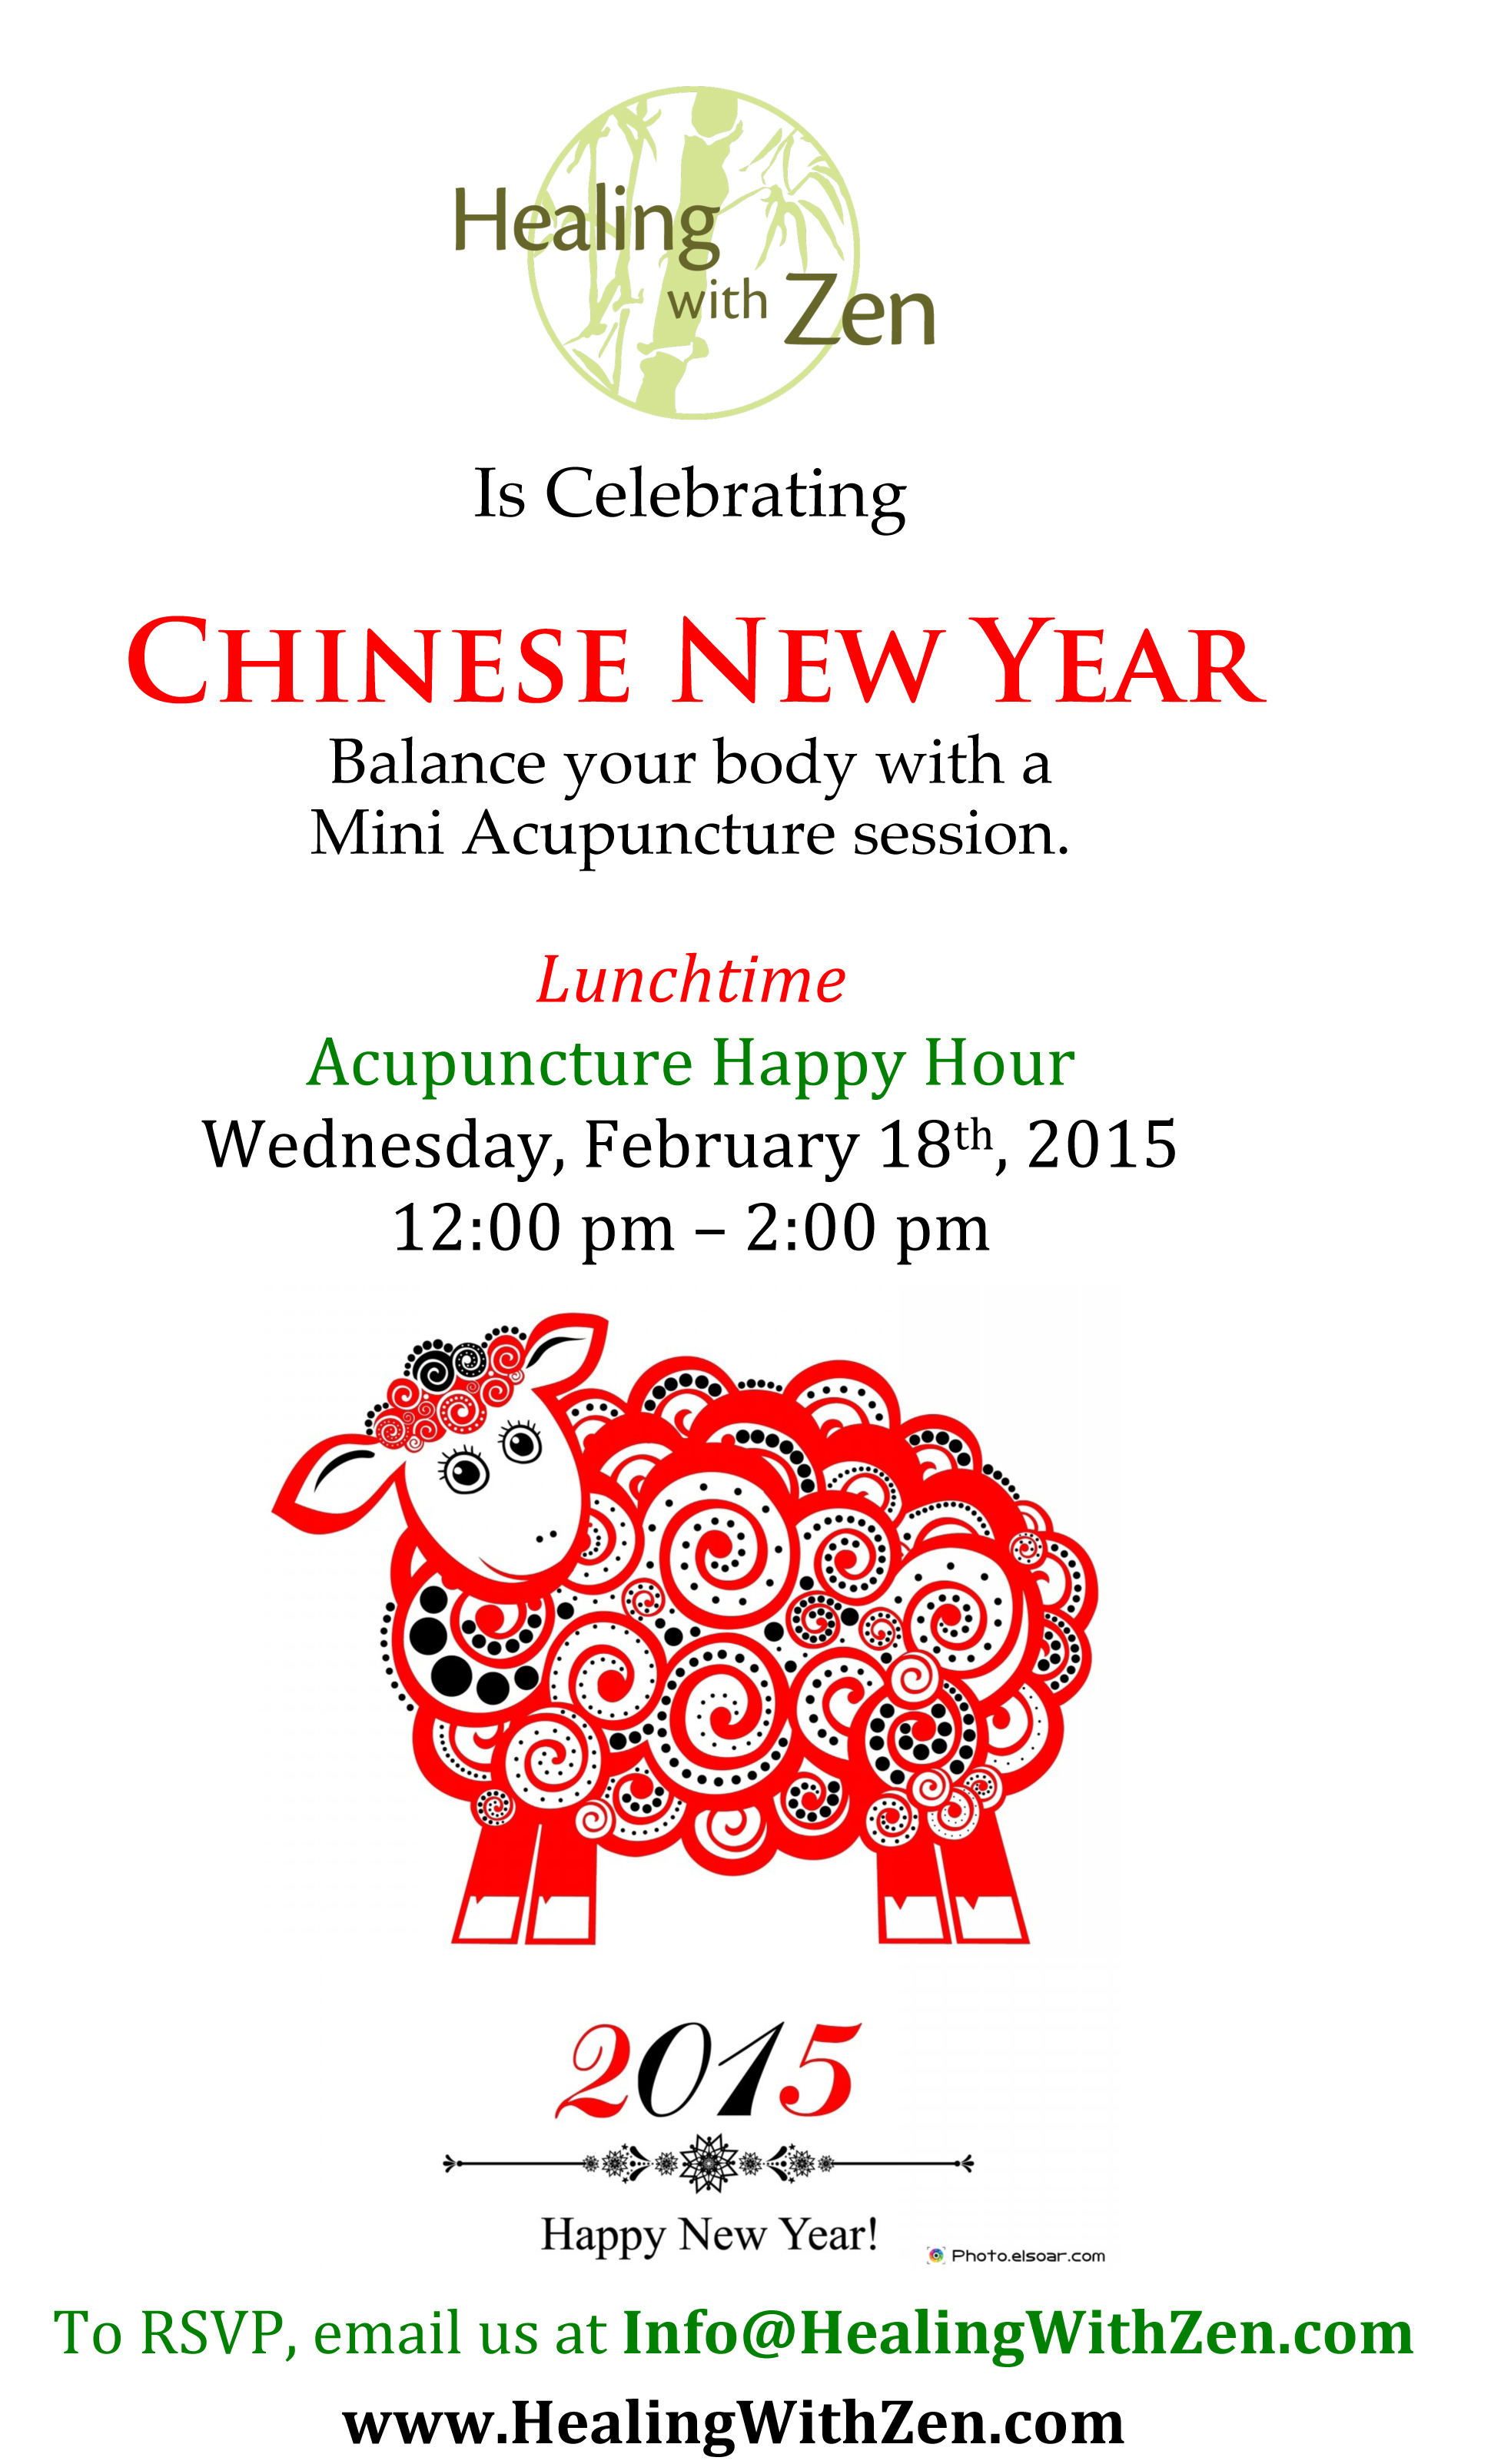 Chinese New Year Celebration - Healing with Zen